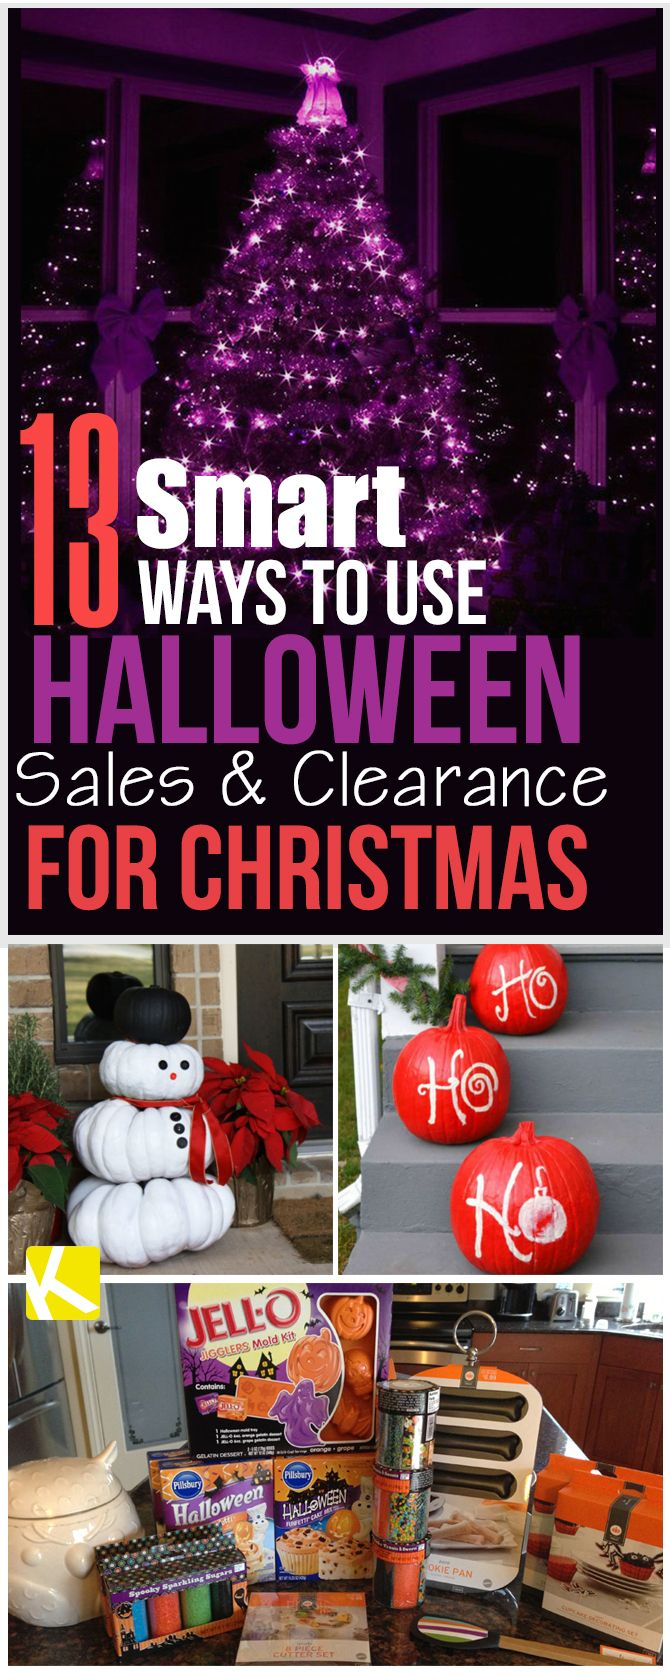 13 Genius Ways to Use Halloween Sales & Clearance for Christmas